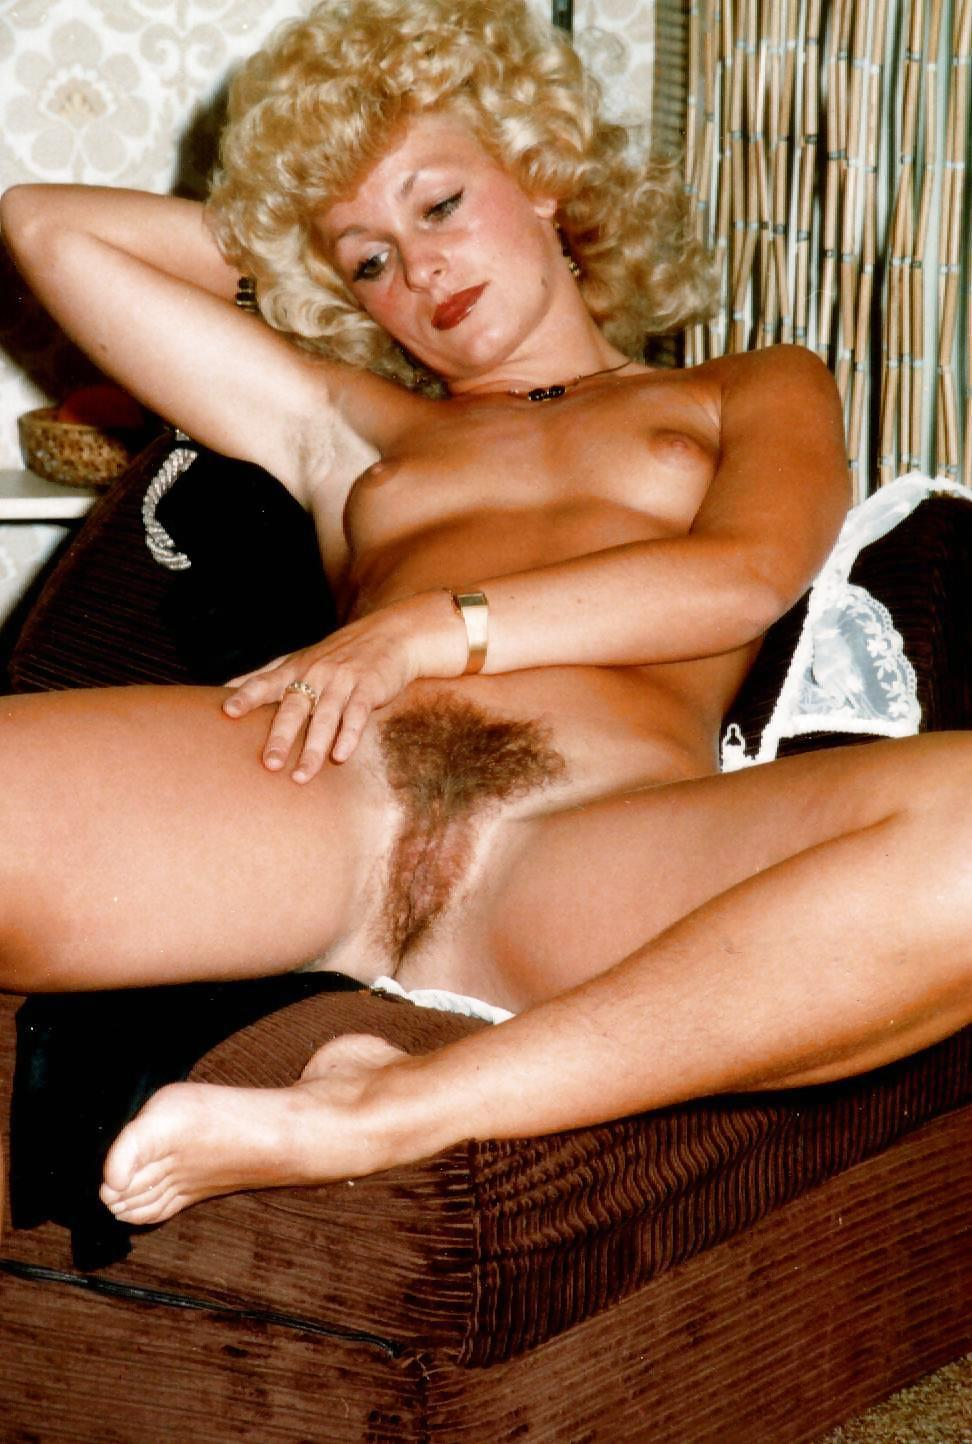 Vintage classic blonde pretty amazing hot beautiful erotica retro pussy ass hairy sweet hot hat doggy